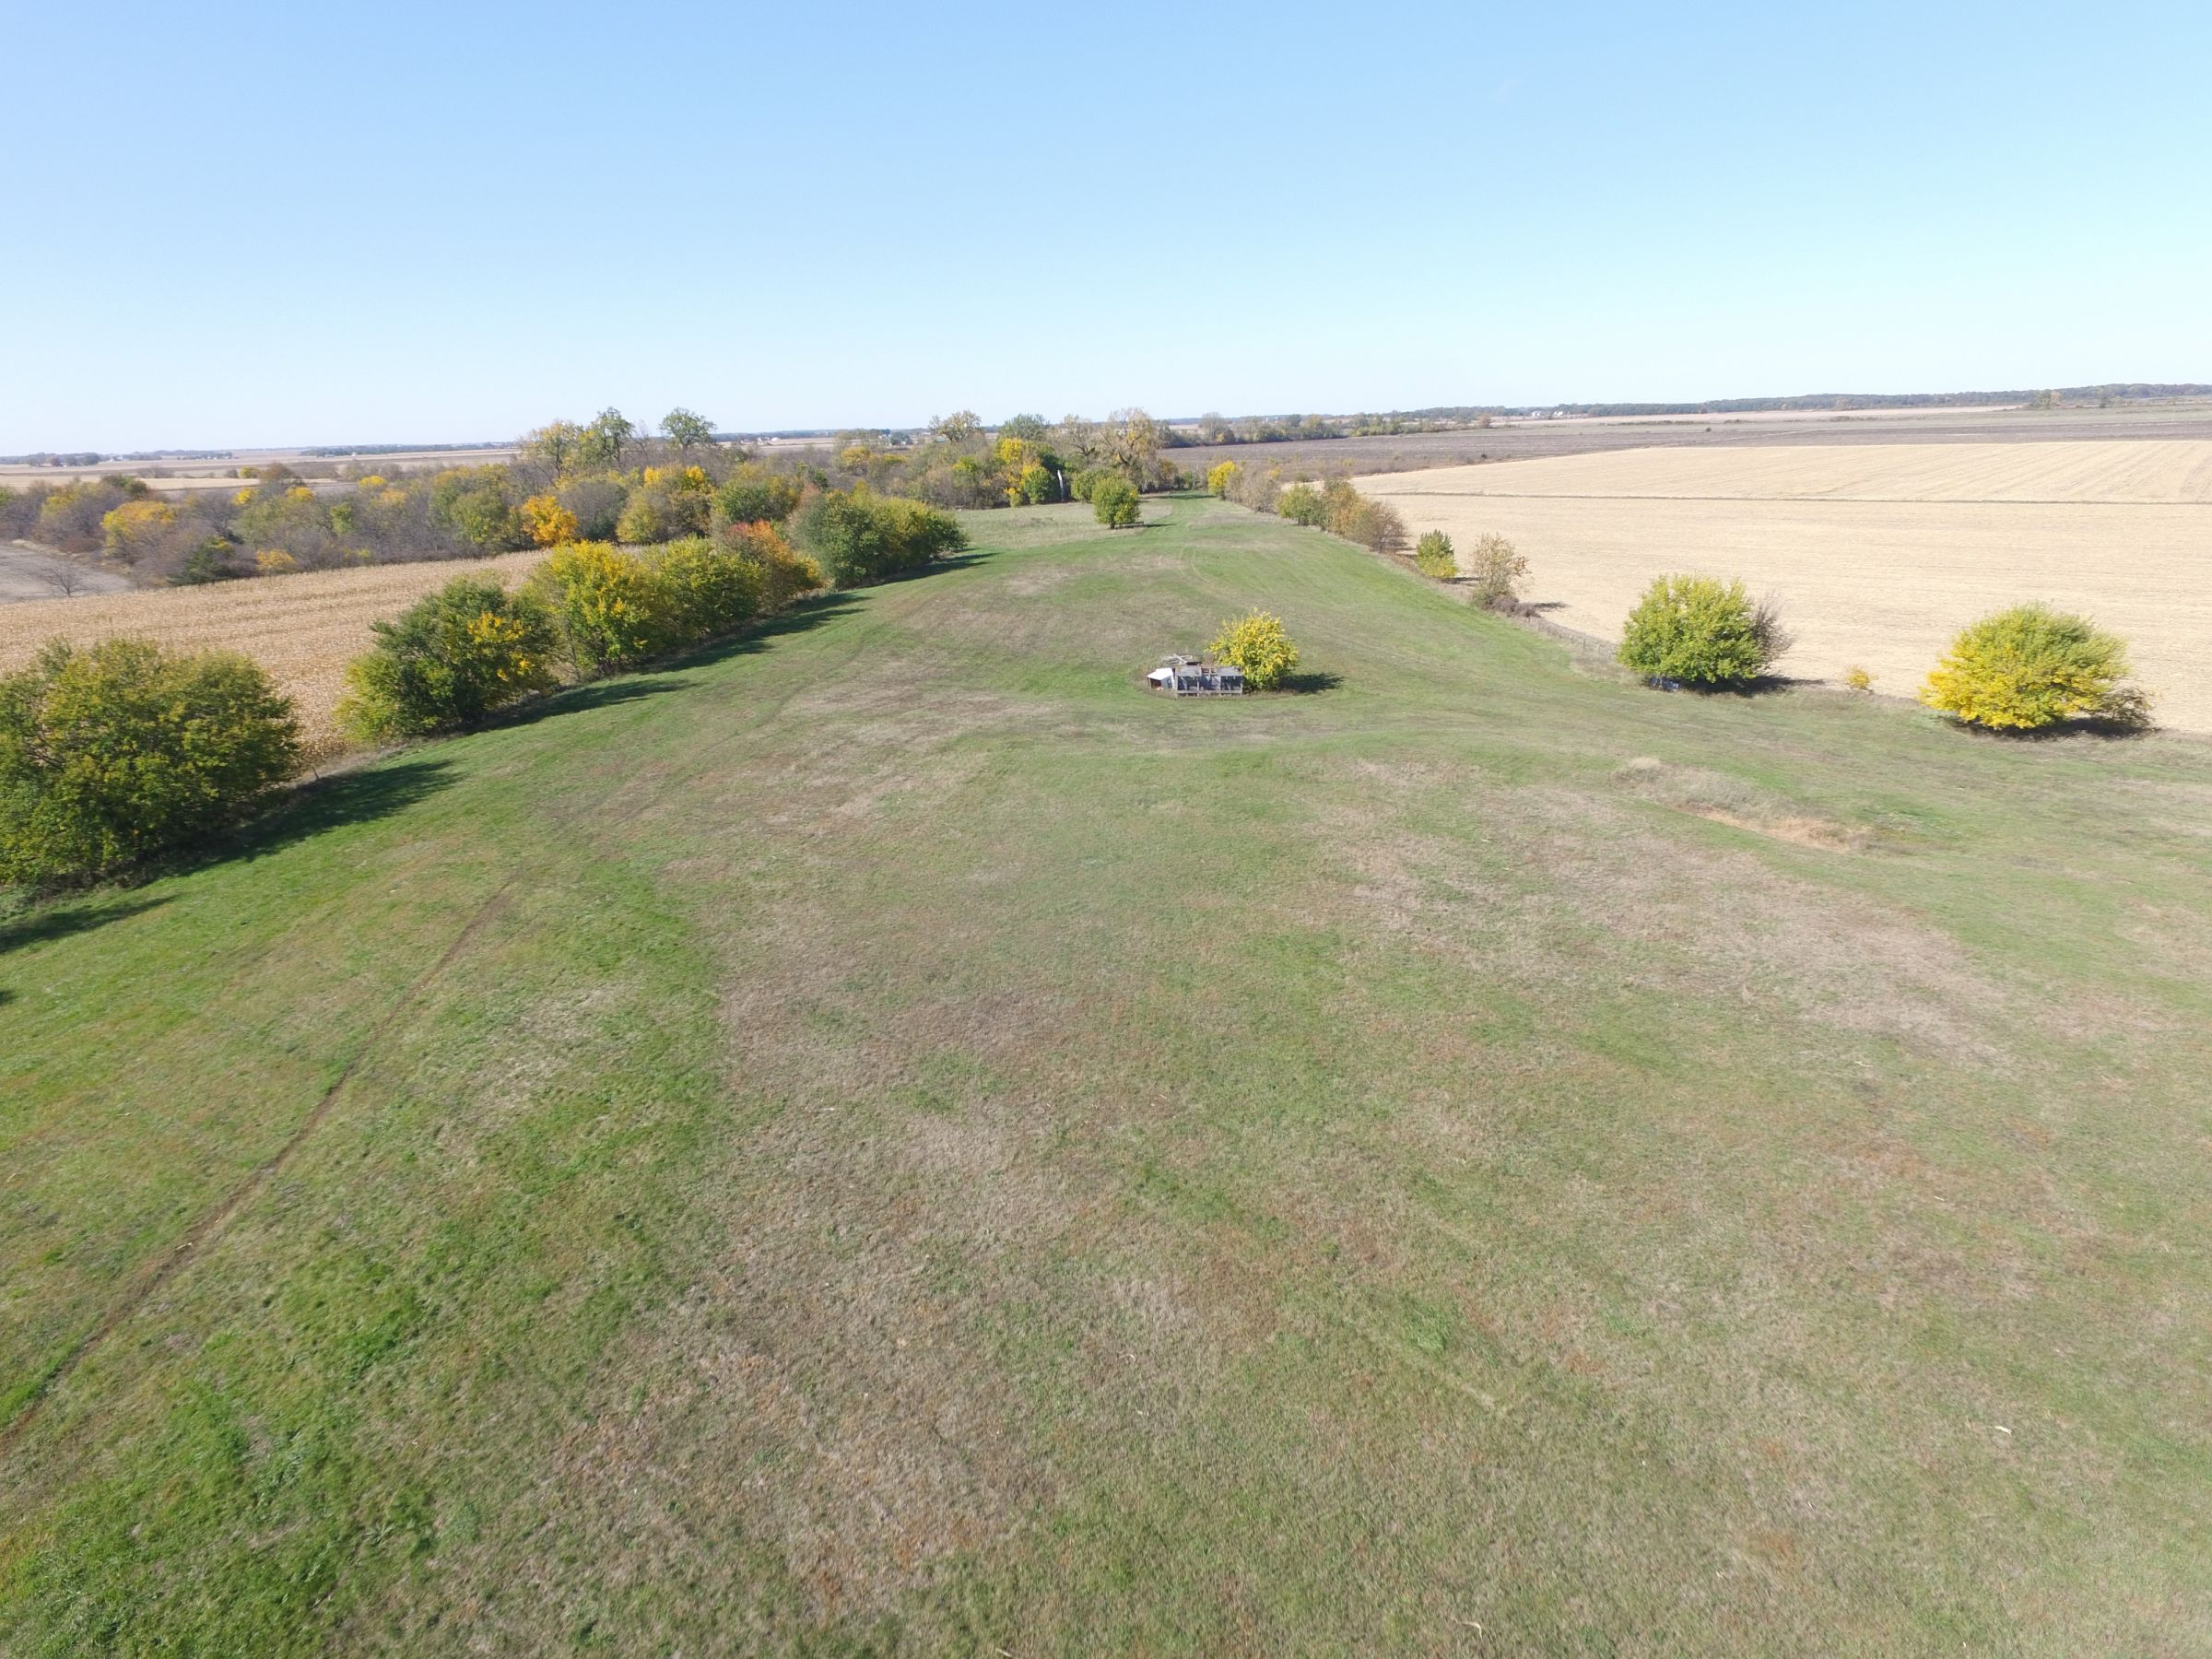 land-henry-county-illinois-240-acres-listing-number-15213-2-2020-10-22-163831.JPG